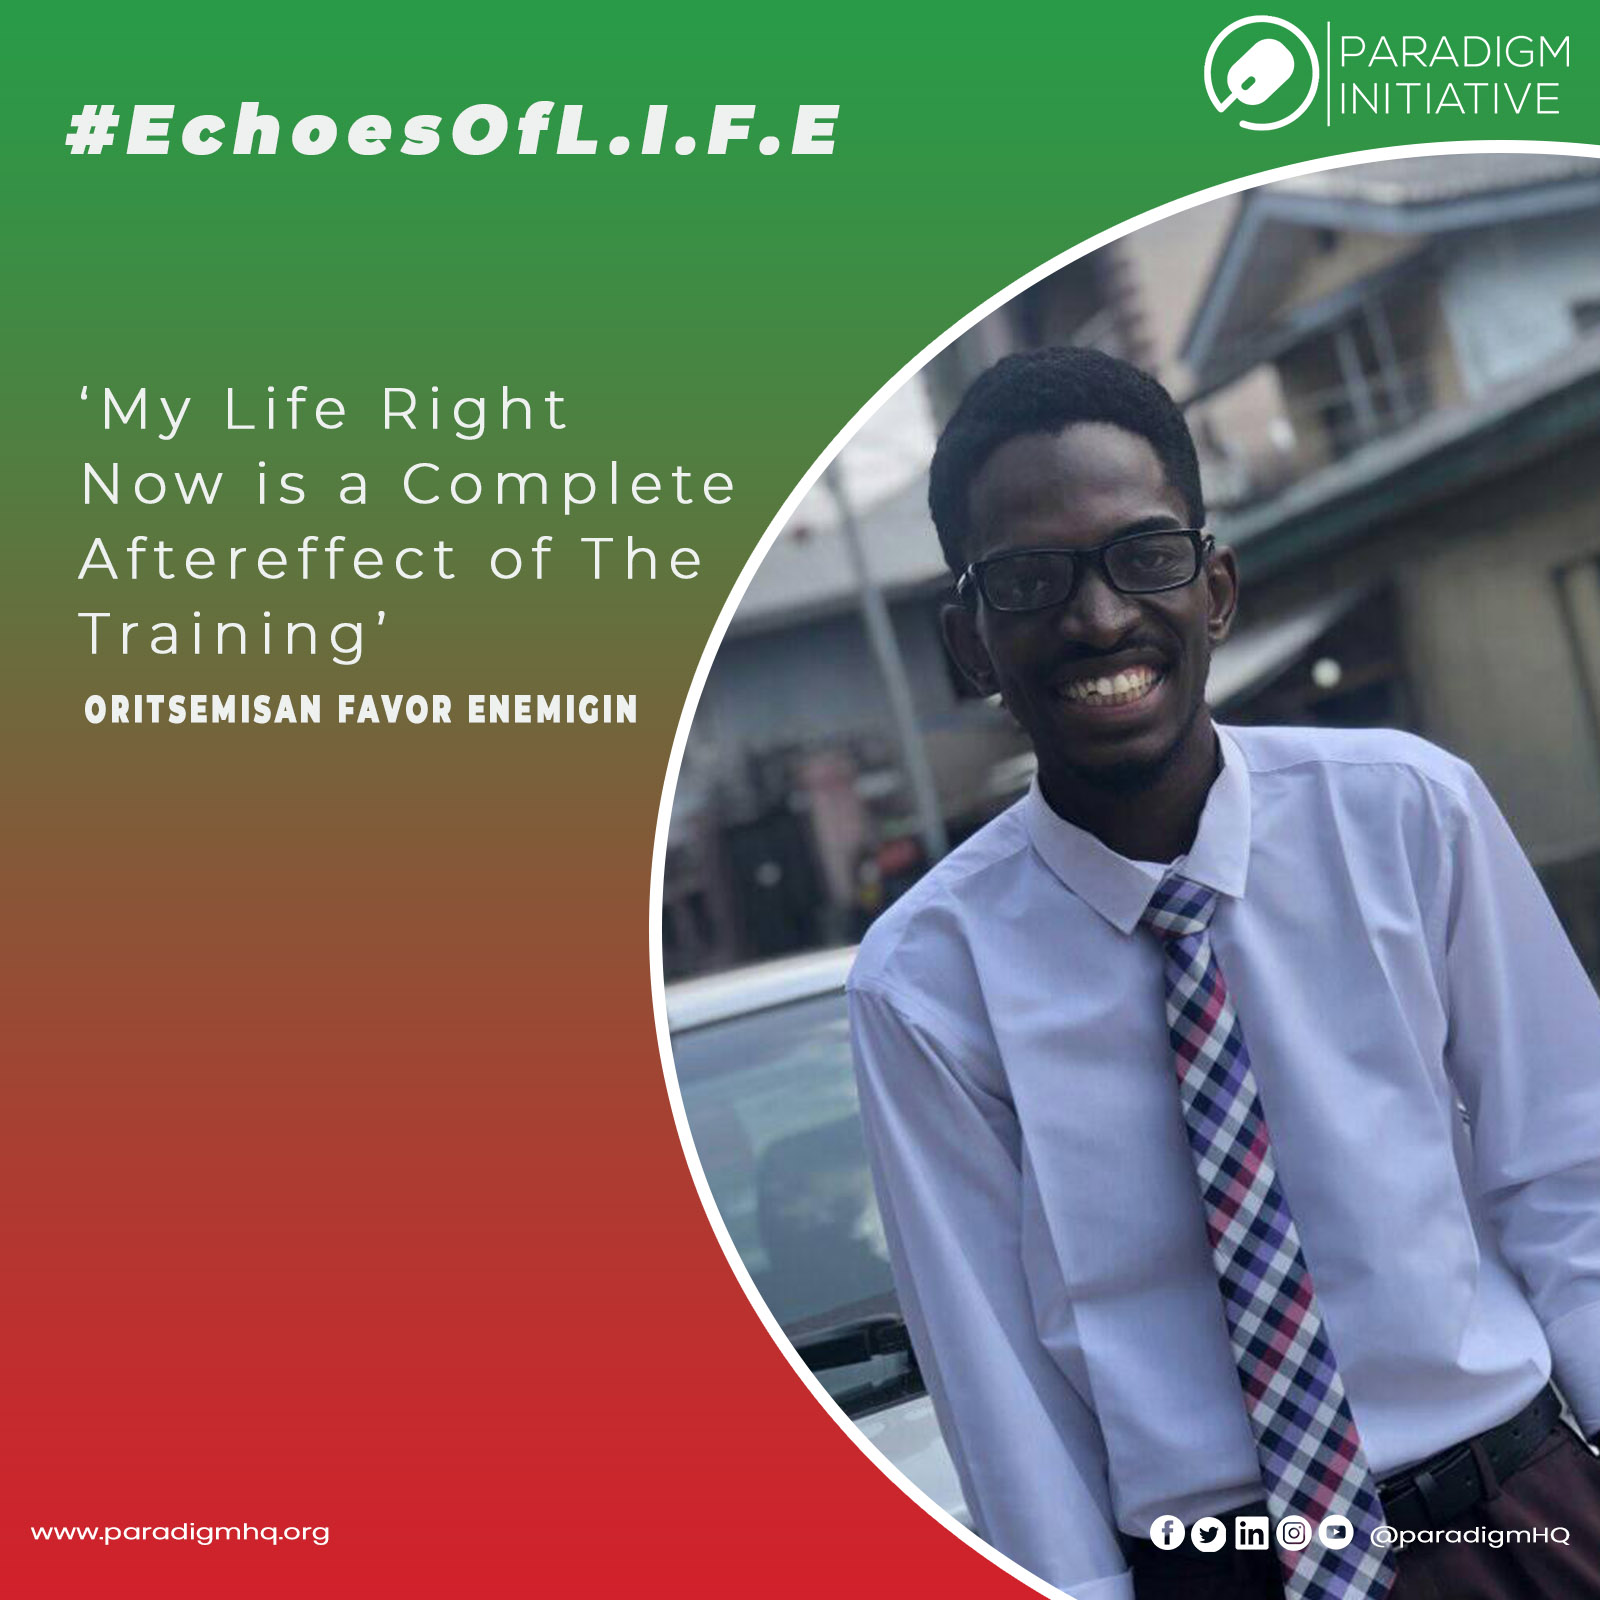 #EchoesFromL.I.F.E: 'My Life Right Now is a Complete Aftereffect of The Training' ORITSEMISAN FAVOR ENEMIGIN